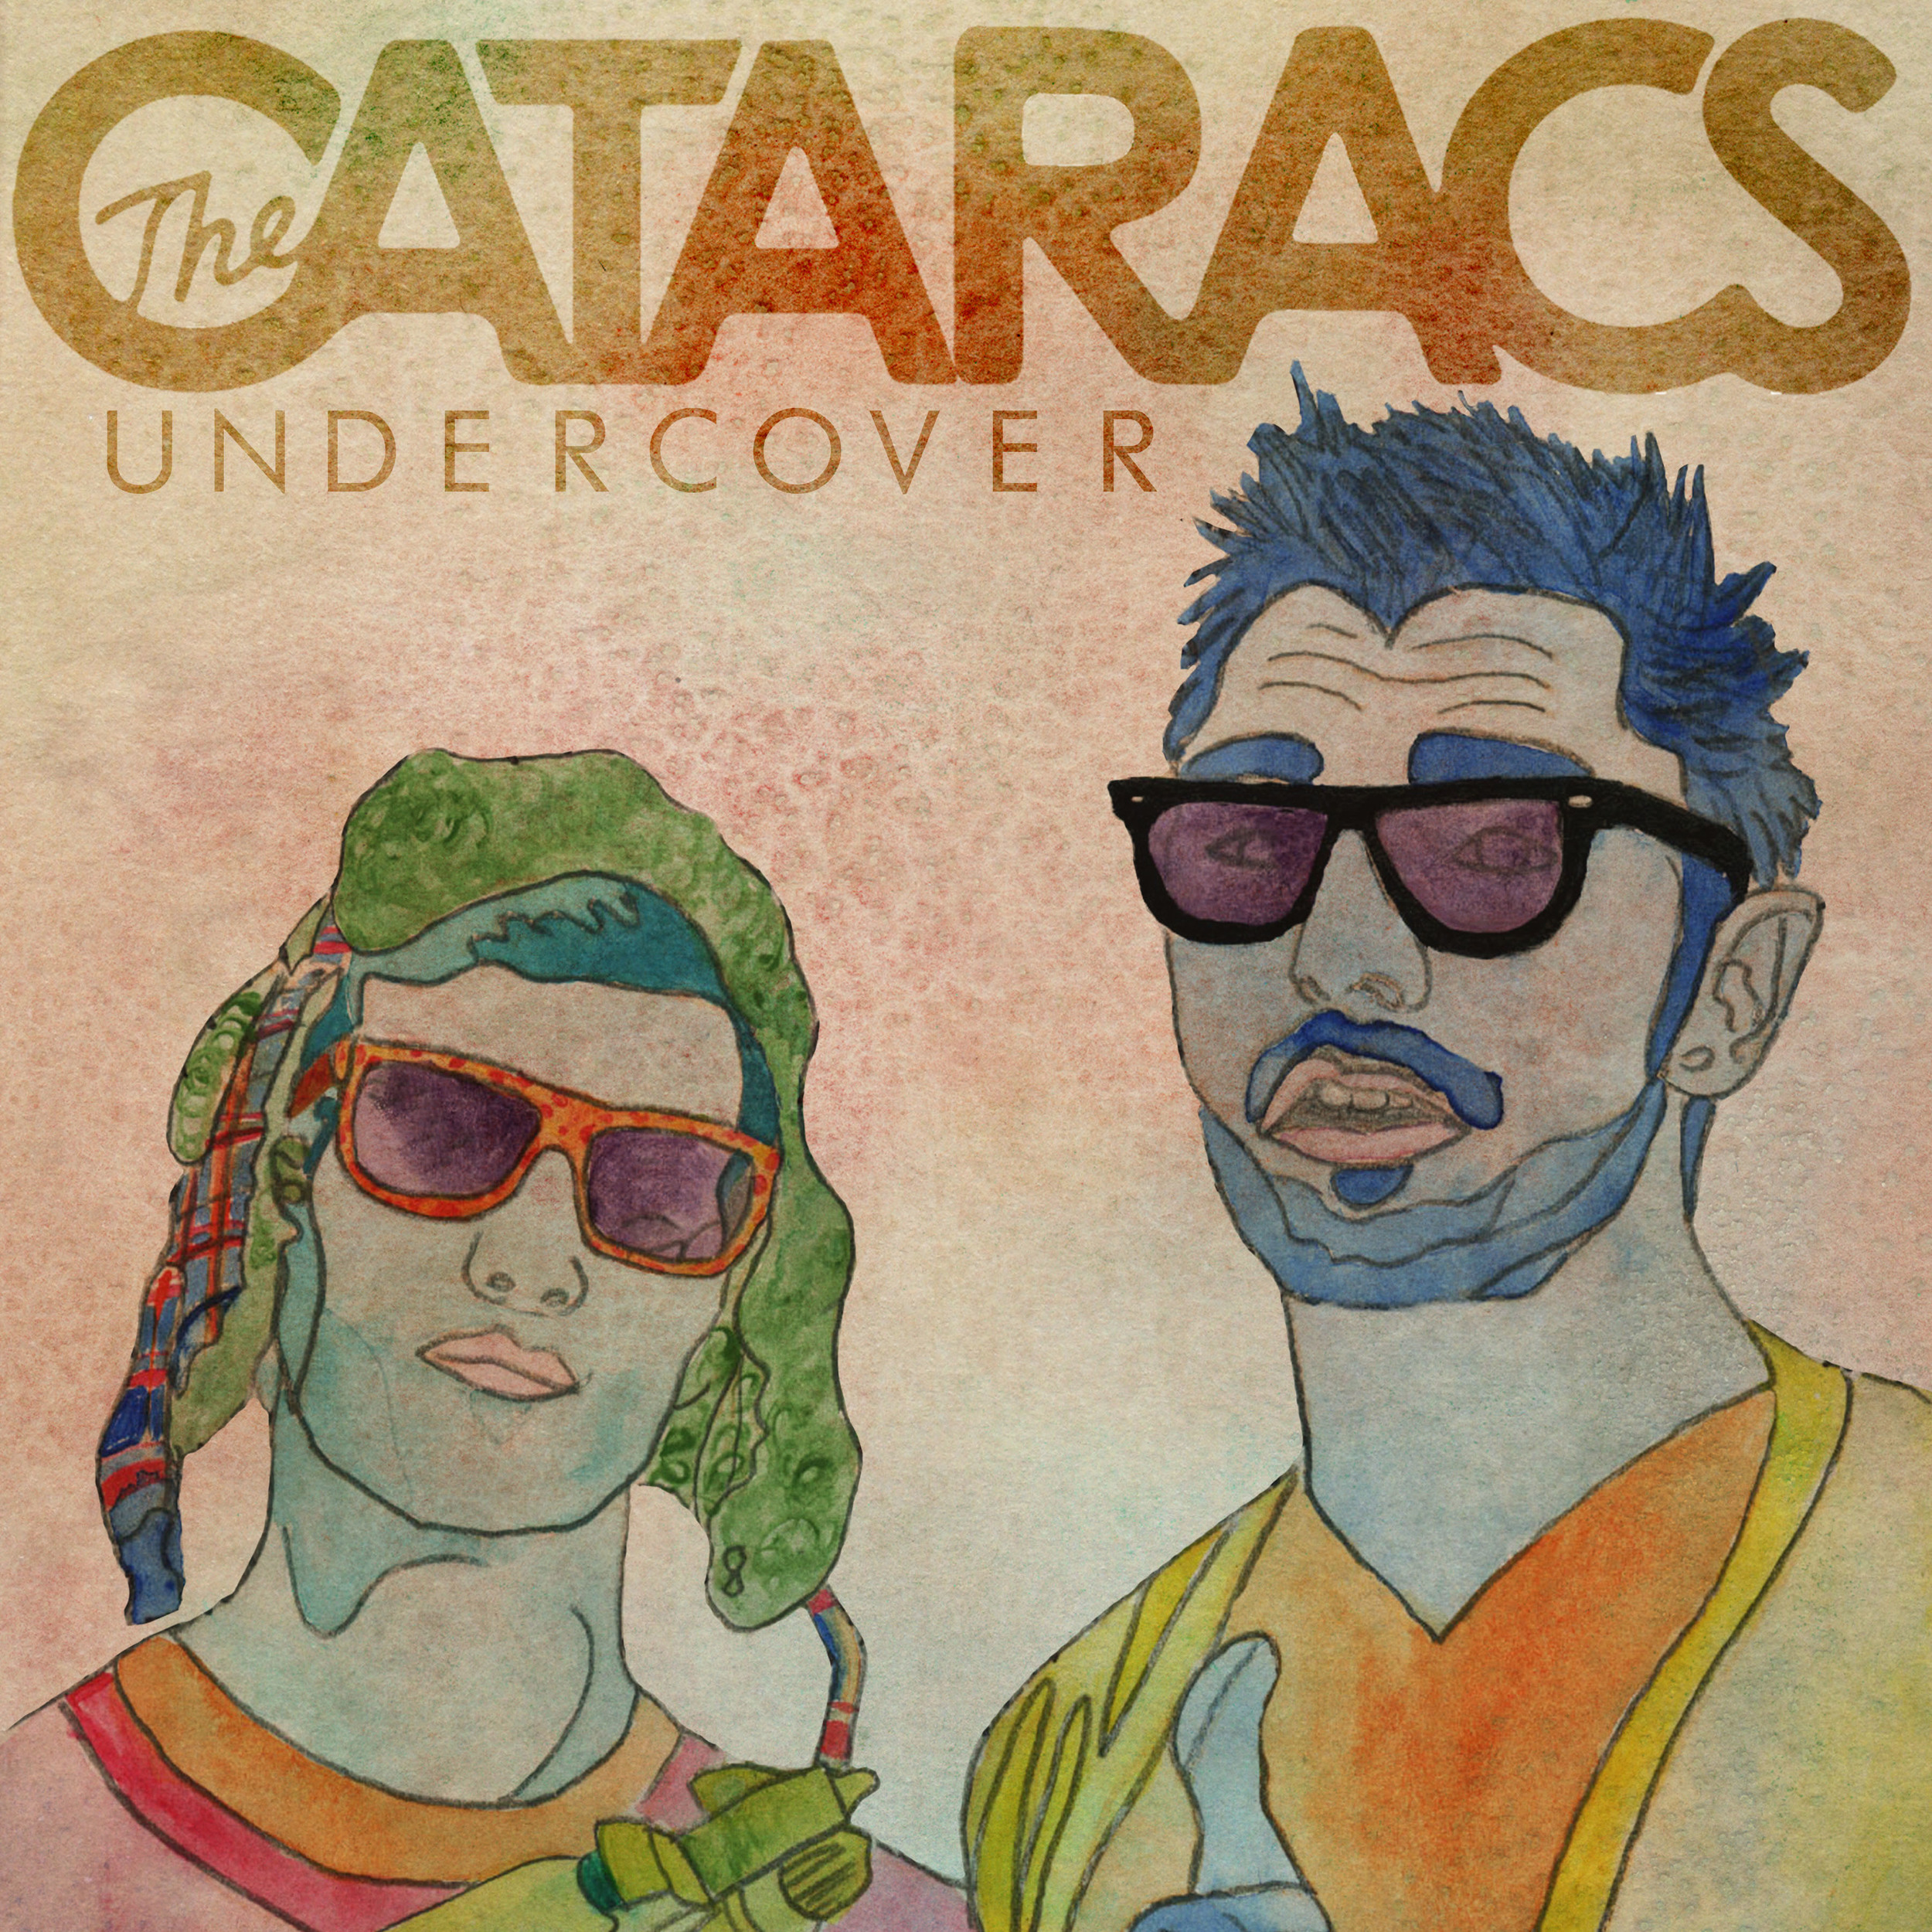 The Cataracs - Undercover - Cover Artwork